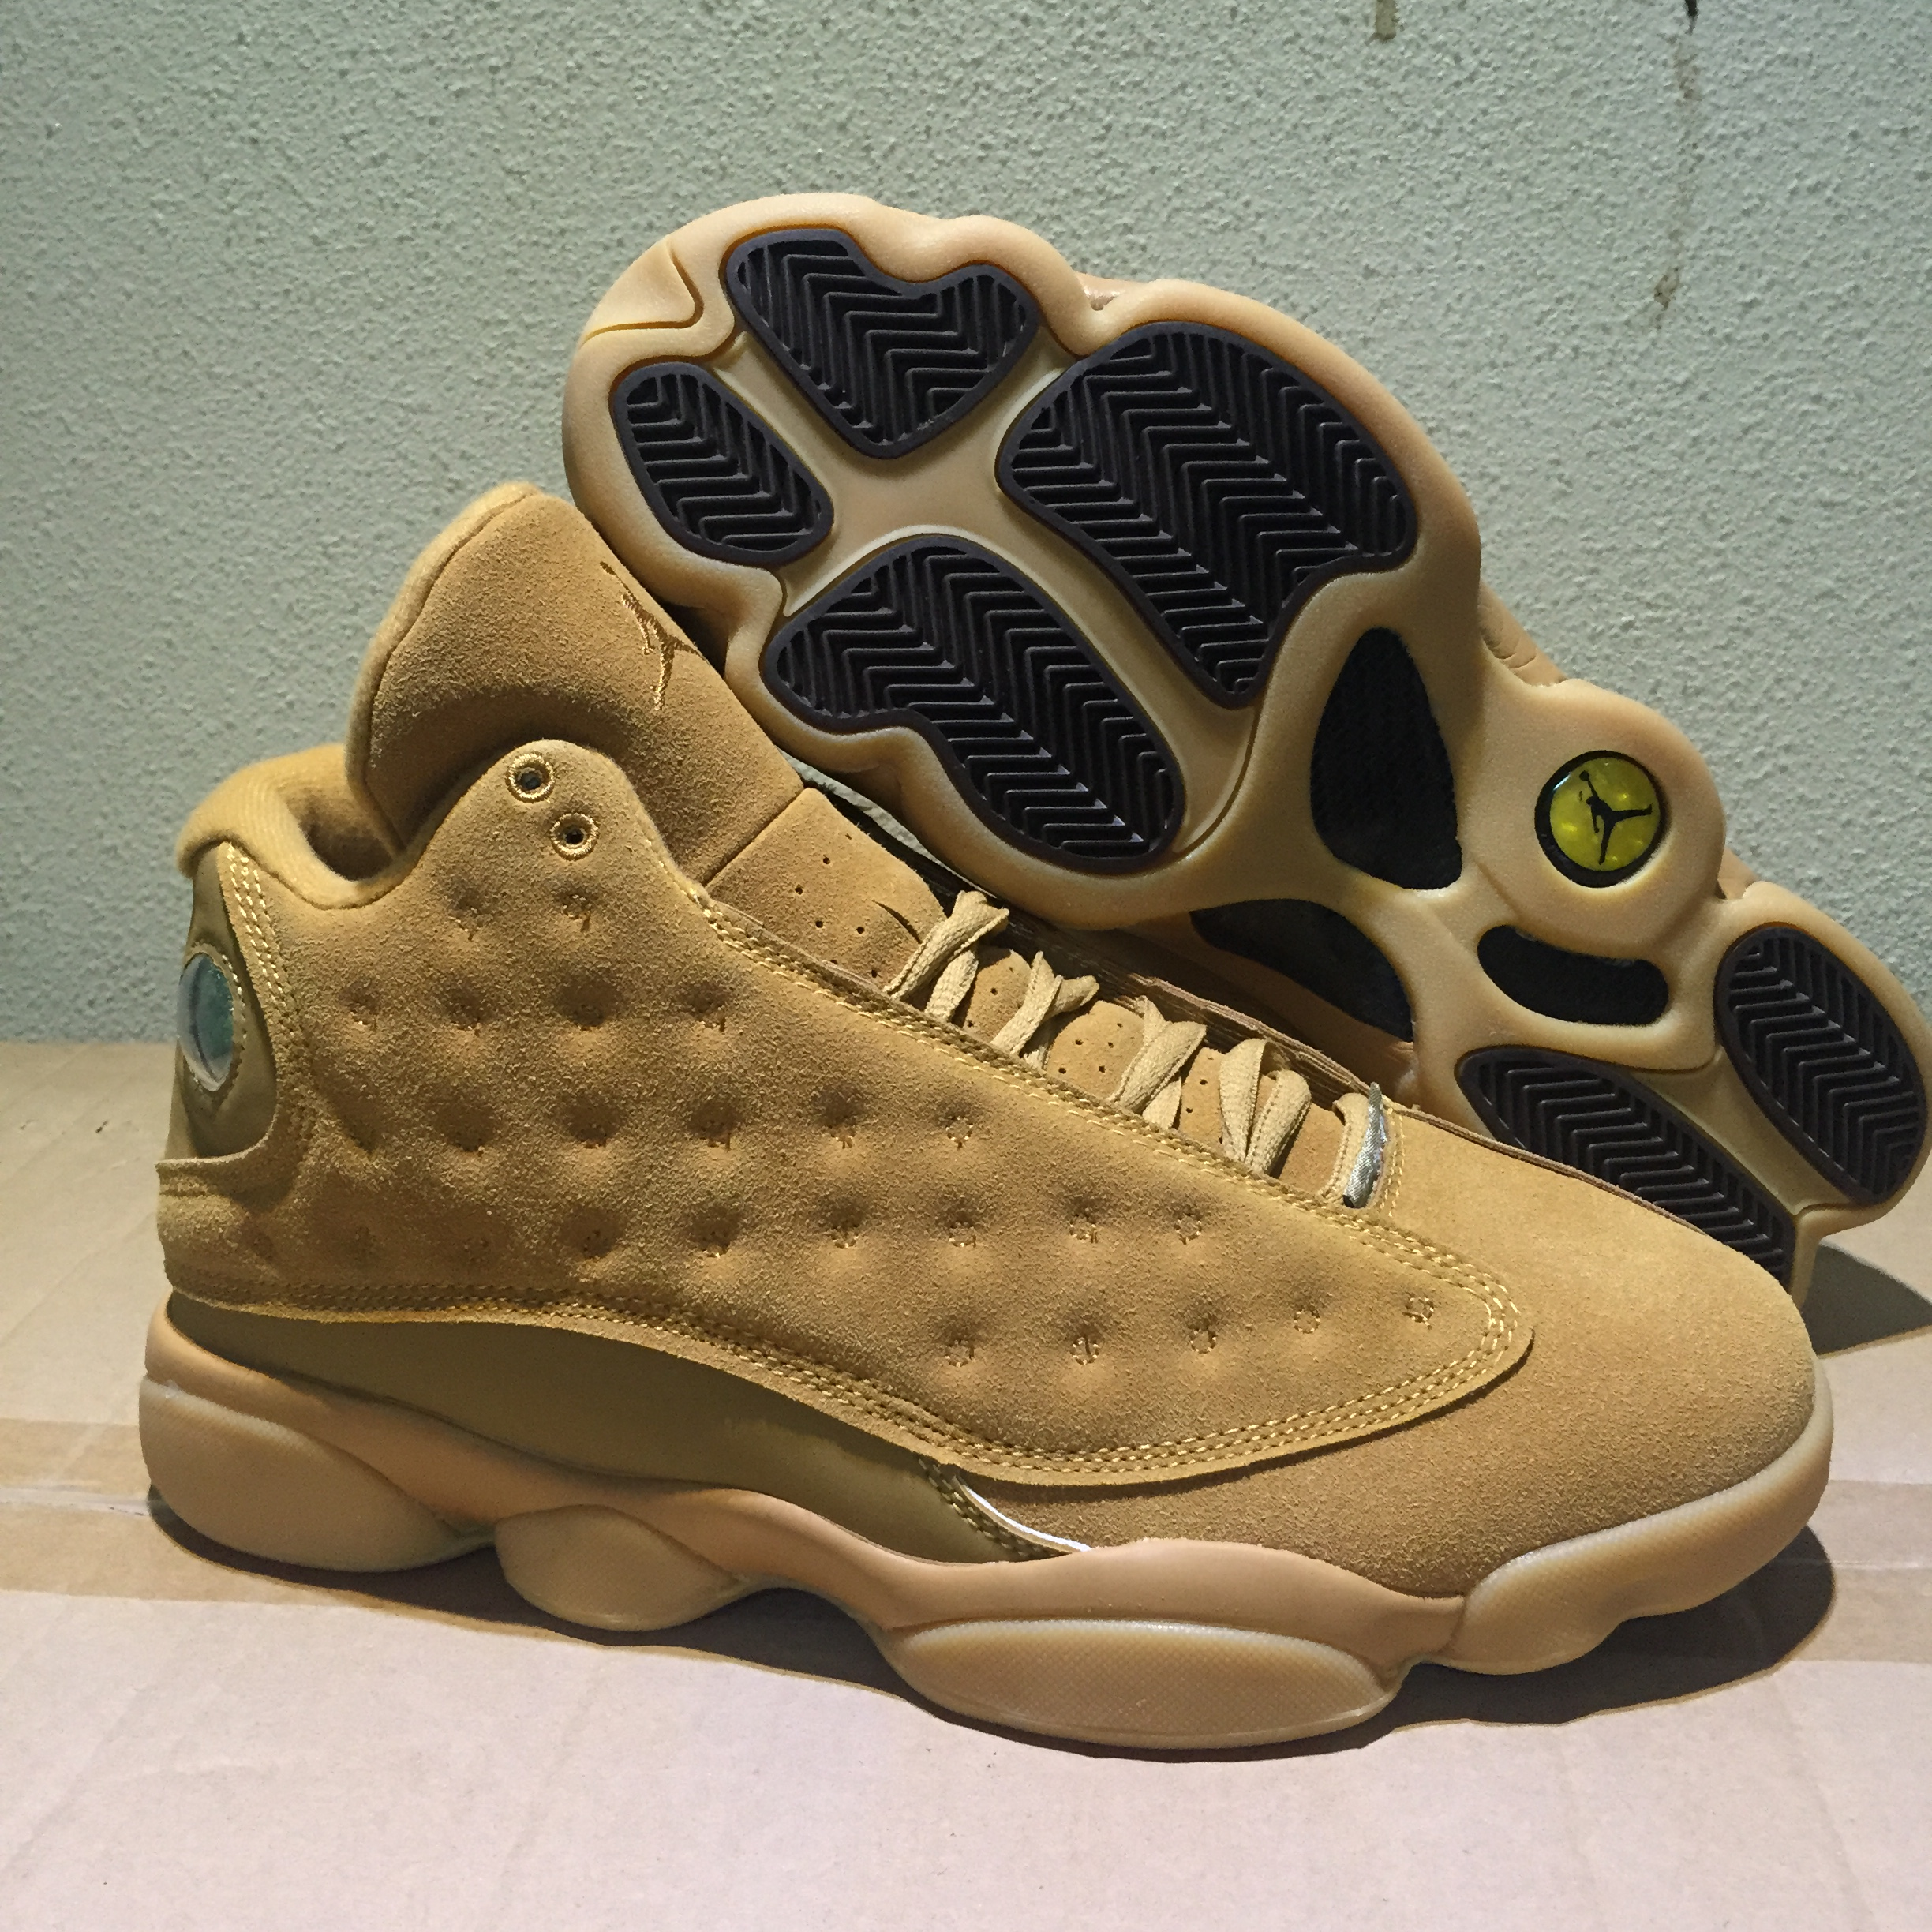 New Air Jordan 13 Wheat Yellow Shoes